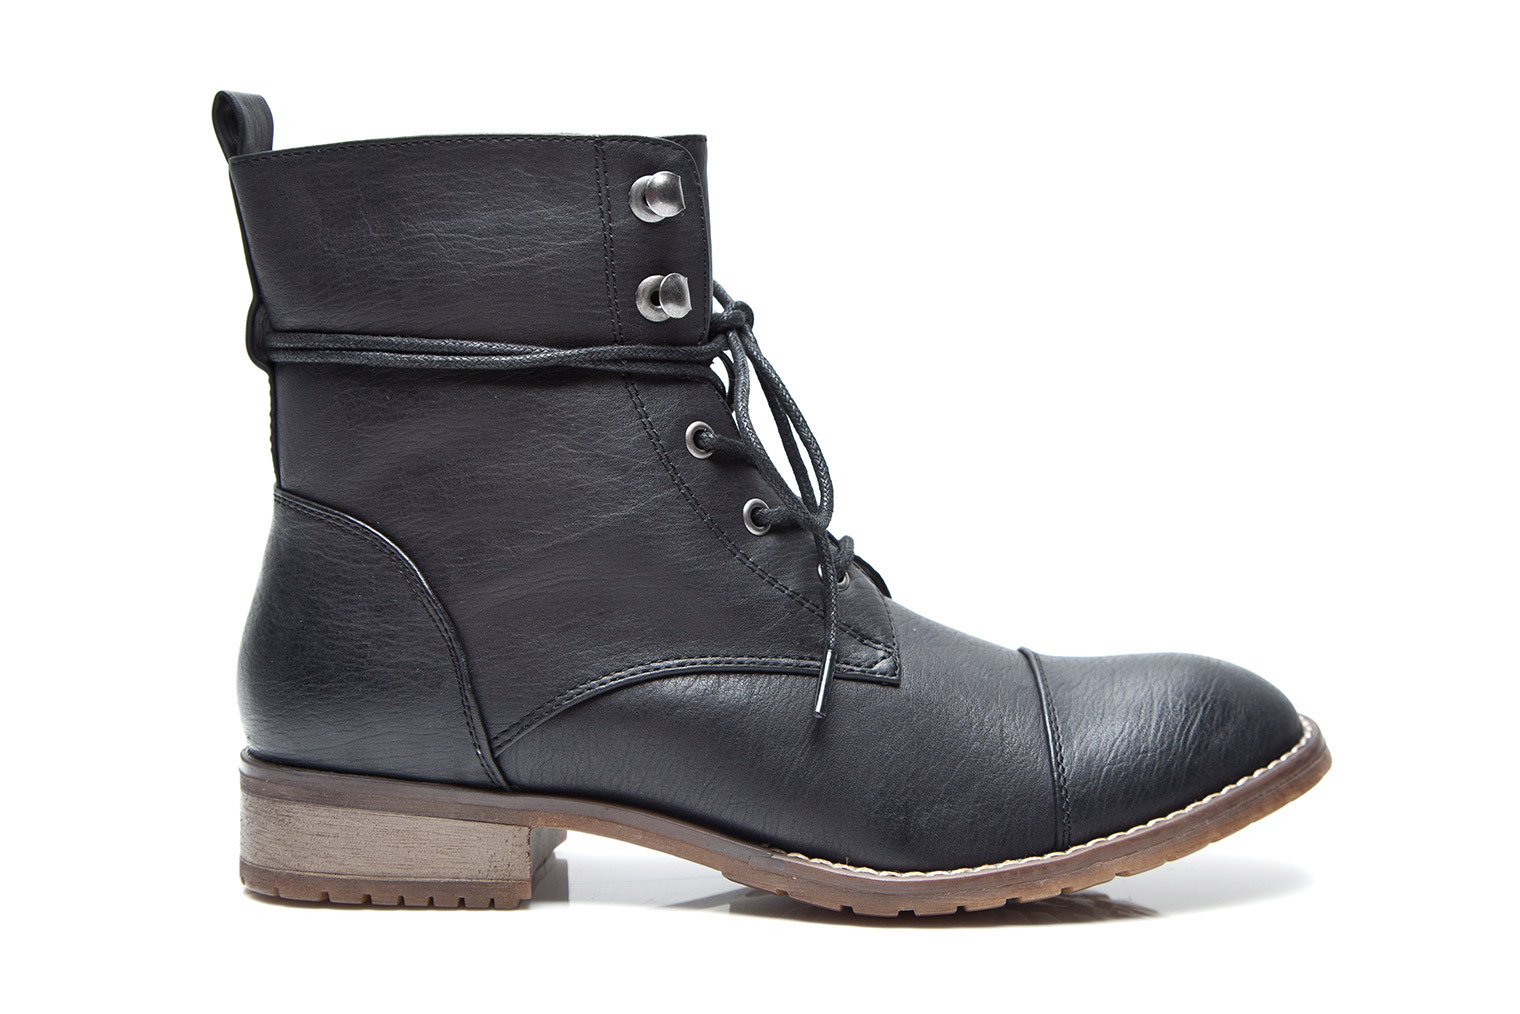 KUSTOM FOOTWEAR AVRIL BOOT / BLACK